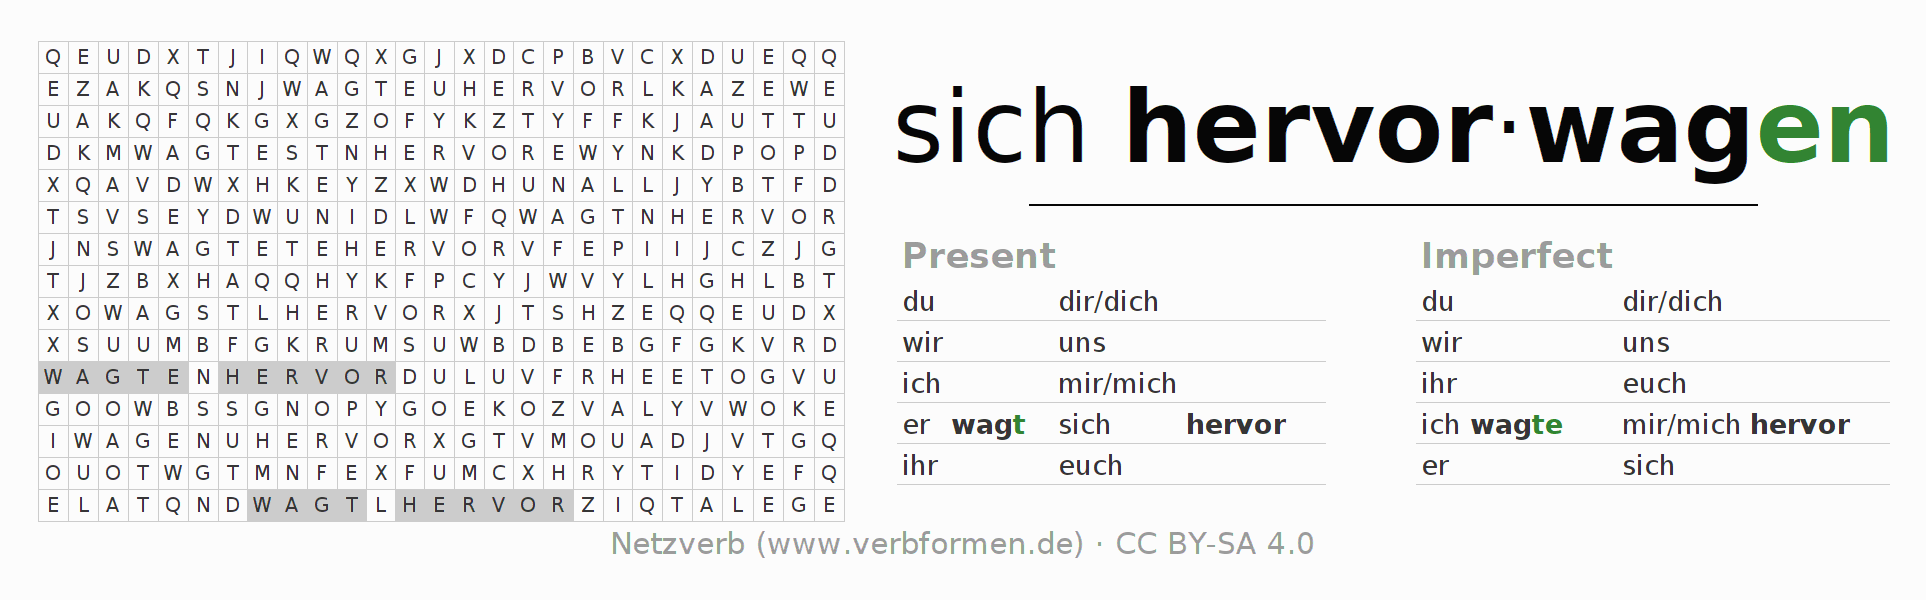 Word search puzzle for the conjugation of the verb sich hervorwagen